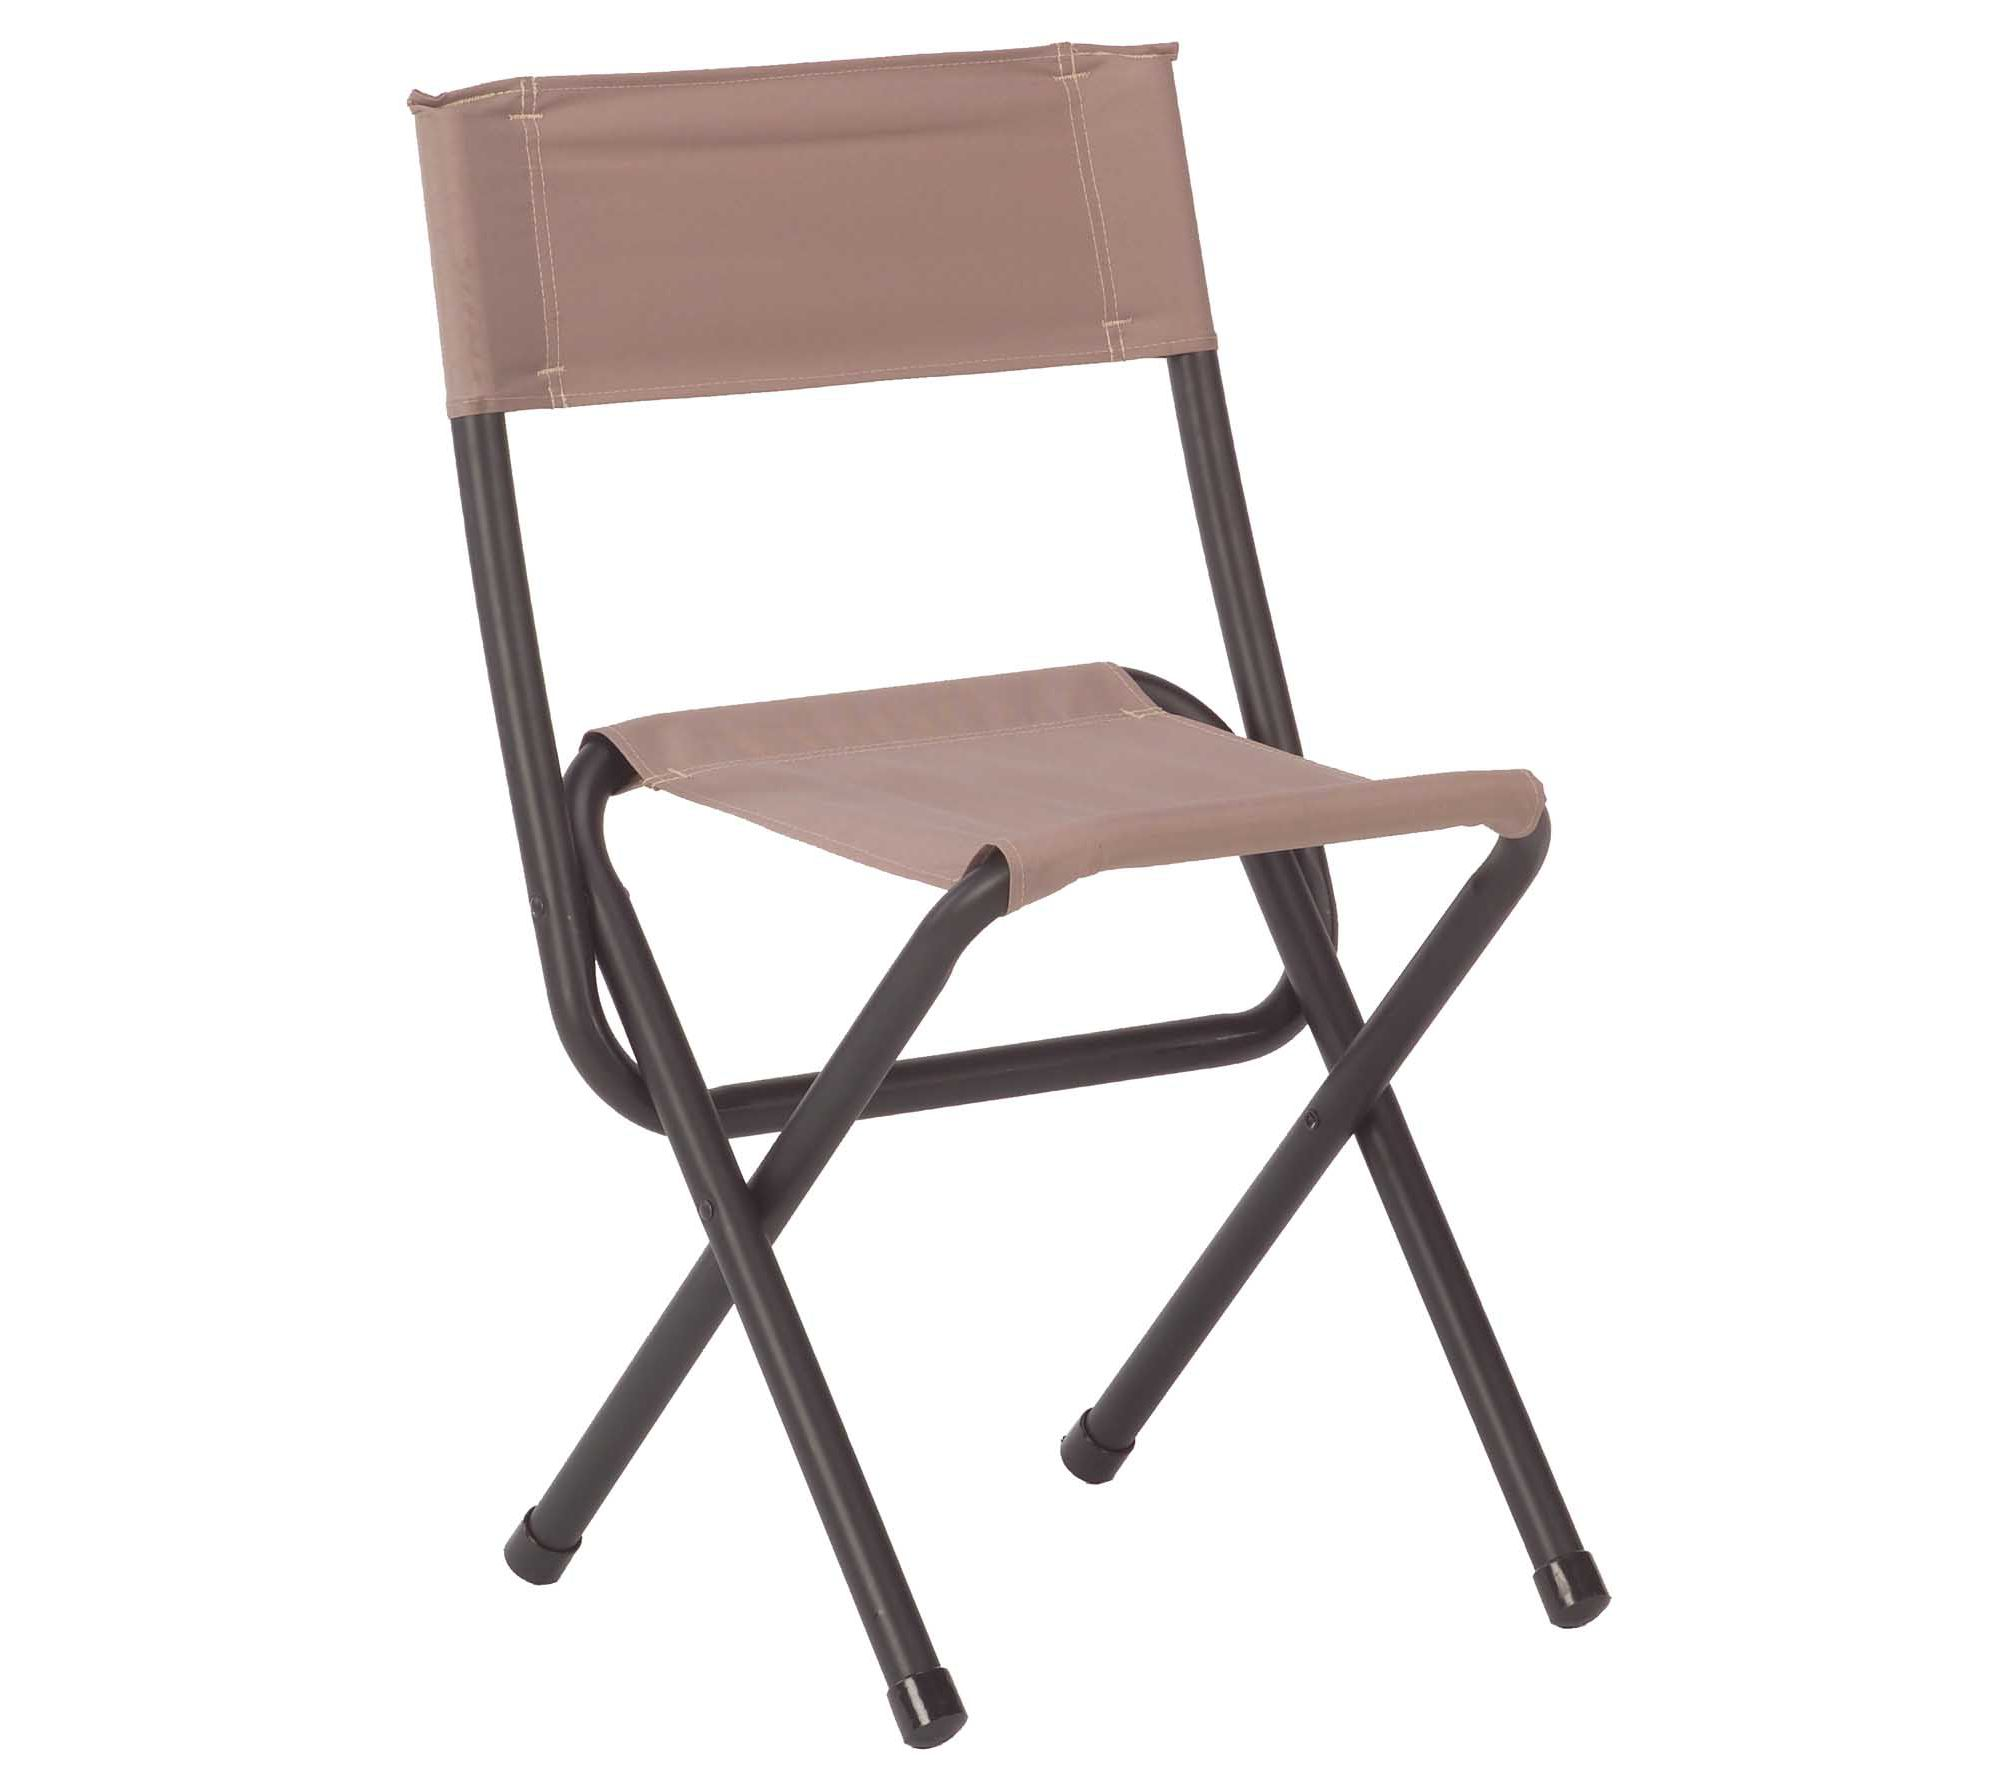 Woodsman™ II Chair USA